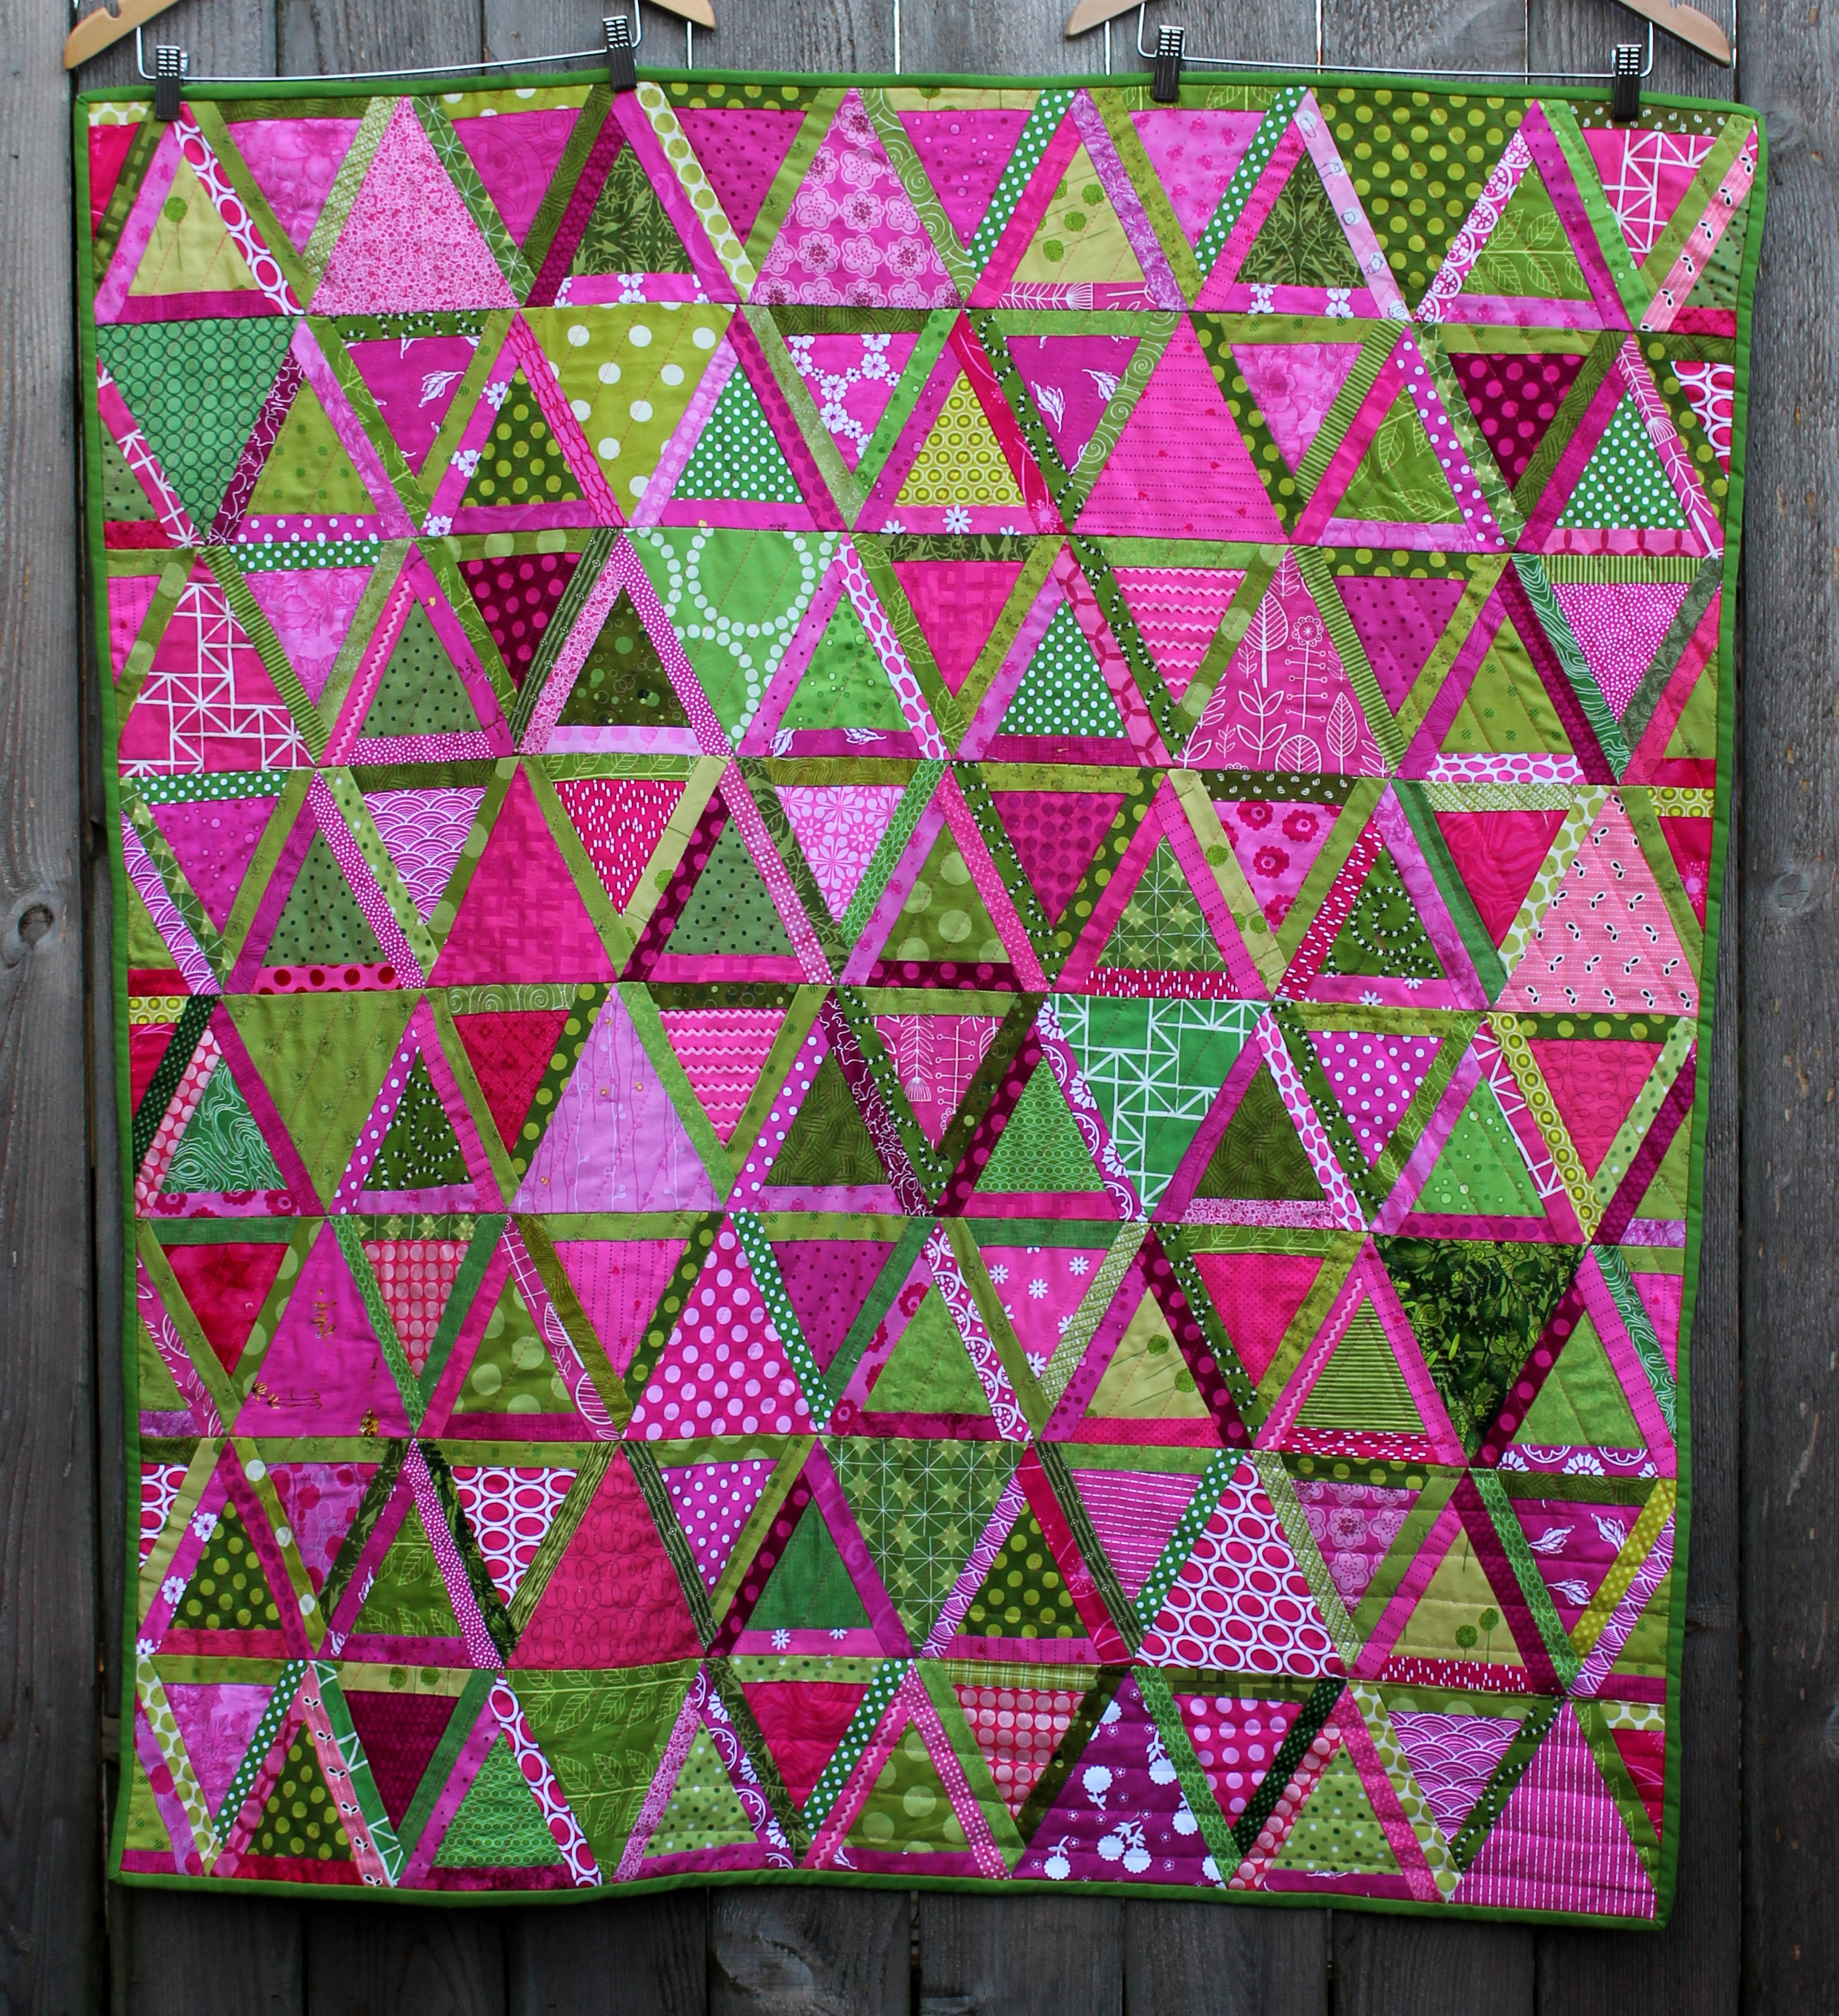 Tricky Triangles finally finished WOMBAT QUILTS